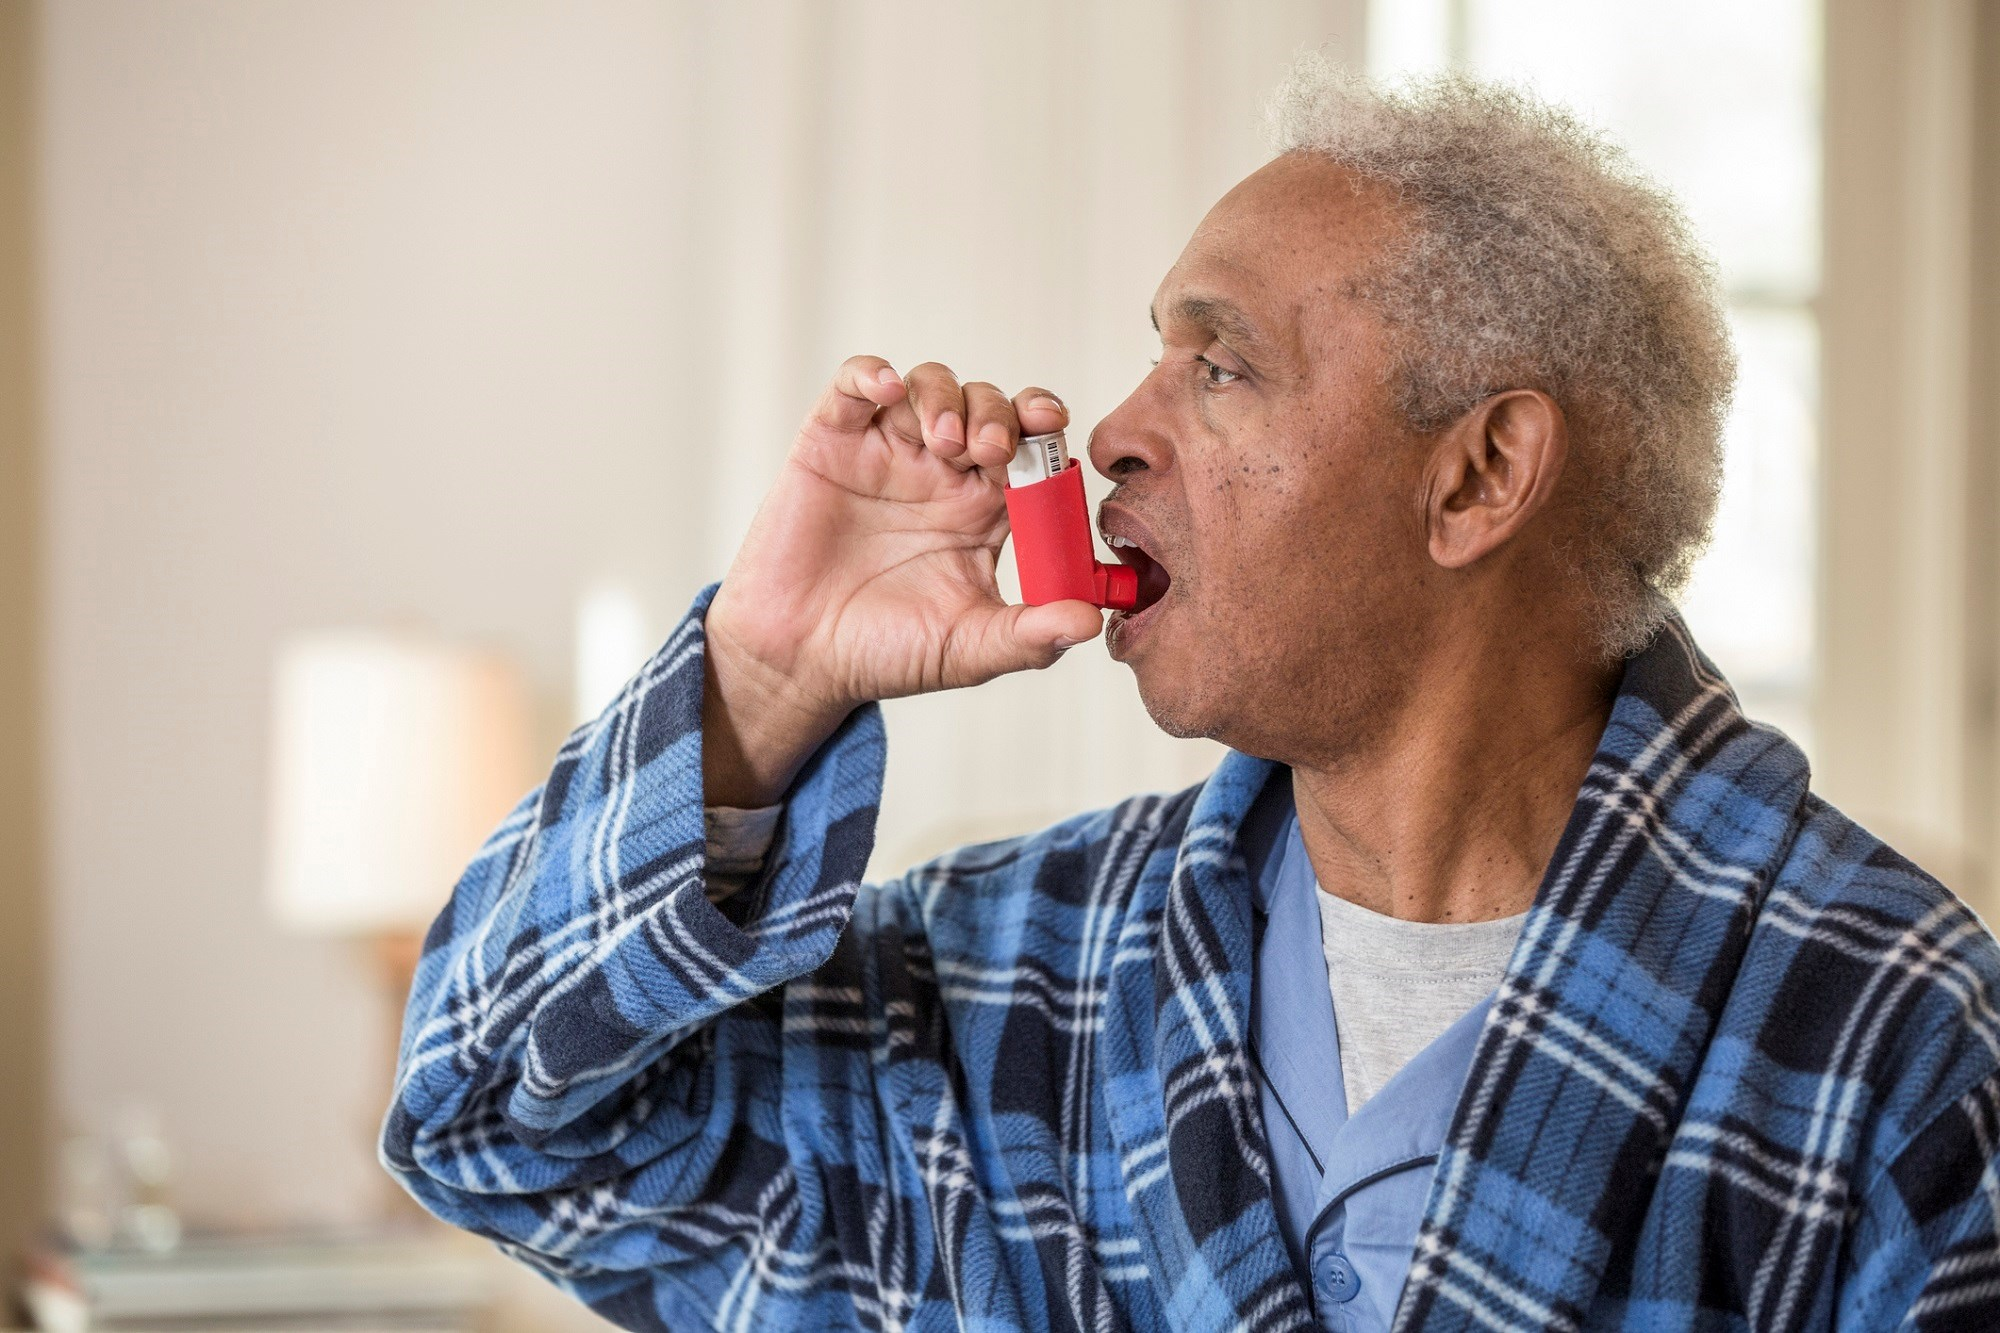 An as-needed combined corticosteroid/beta-agonist inhaler may be an attractive treatment option for patients with mild asthma.